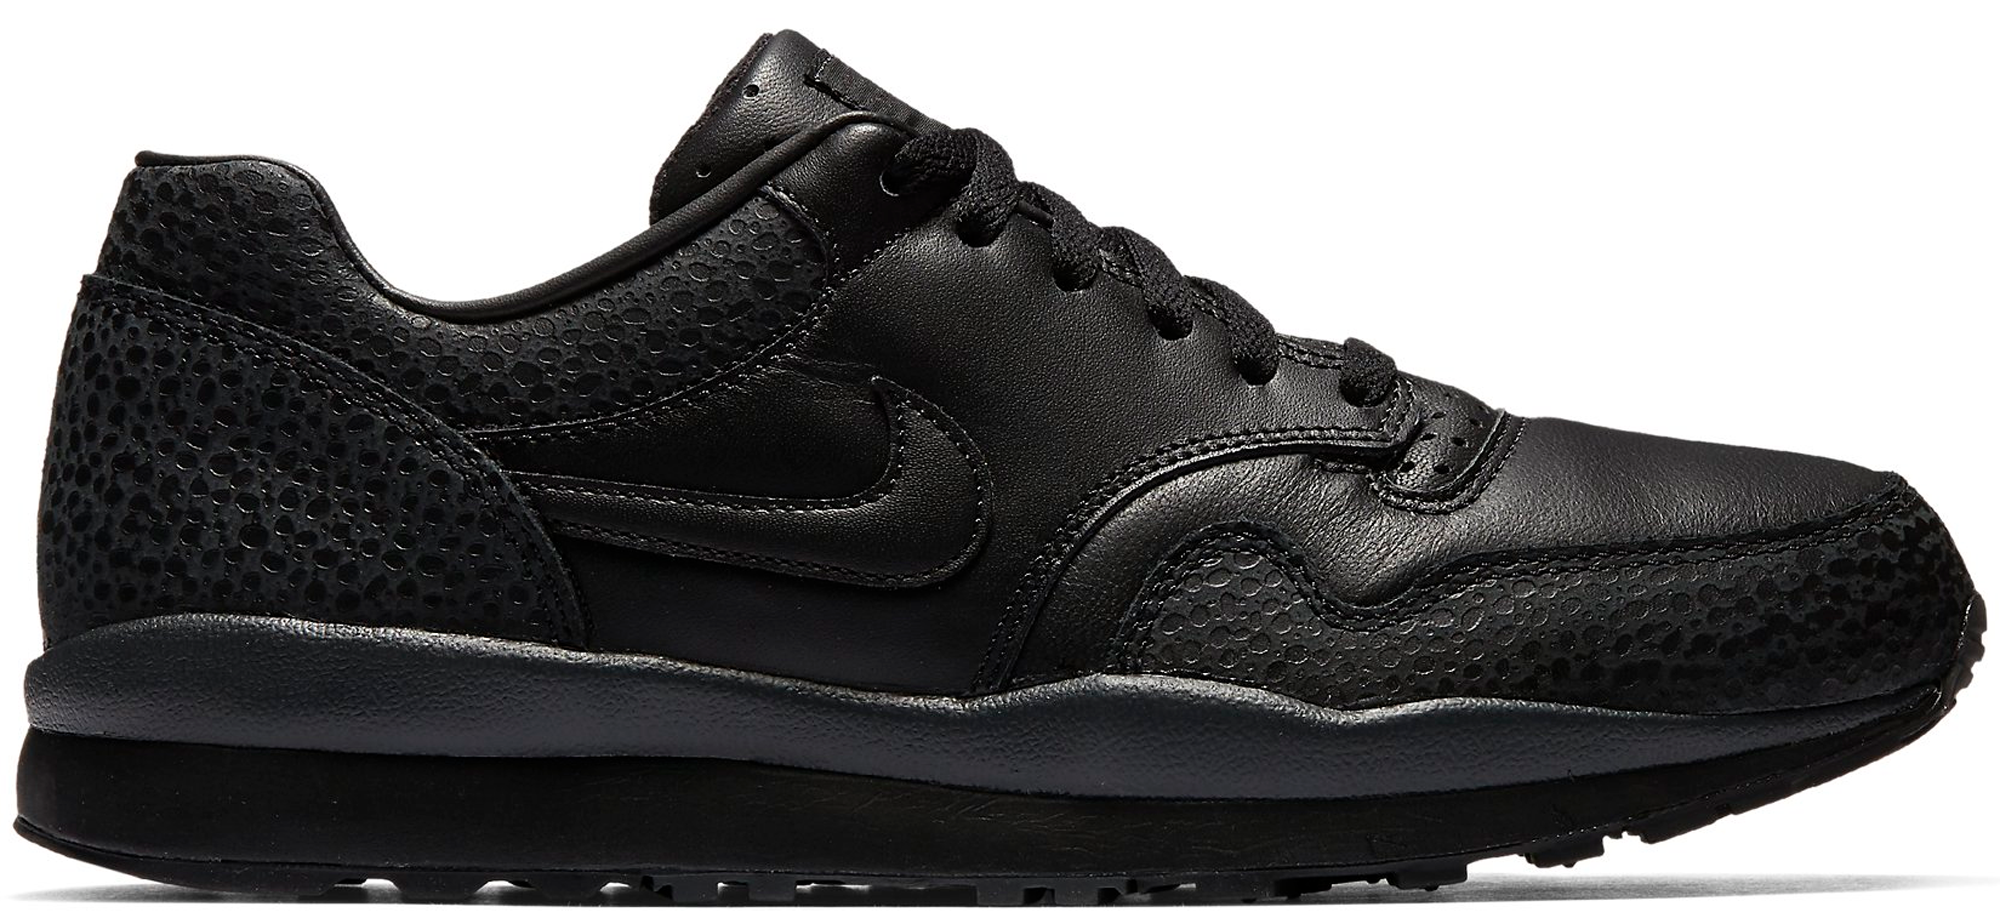 Air Safari Black Anthracite